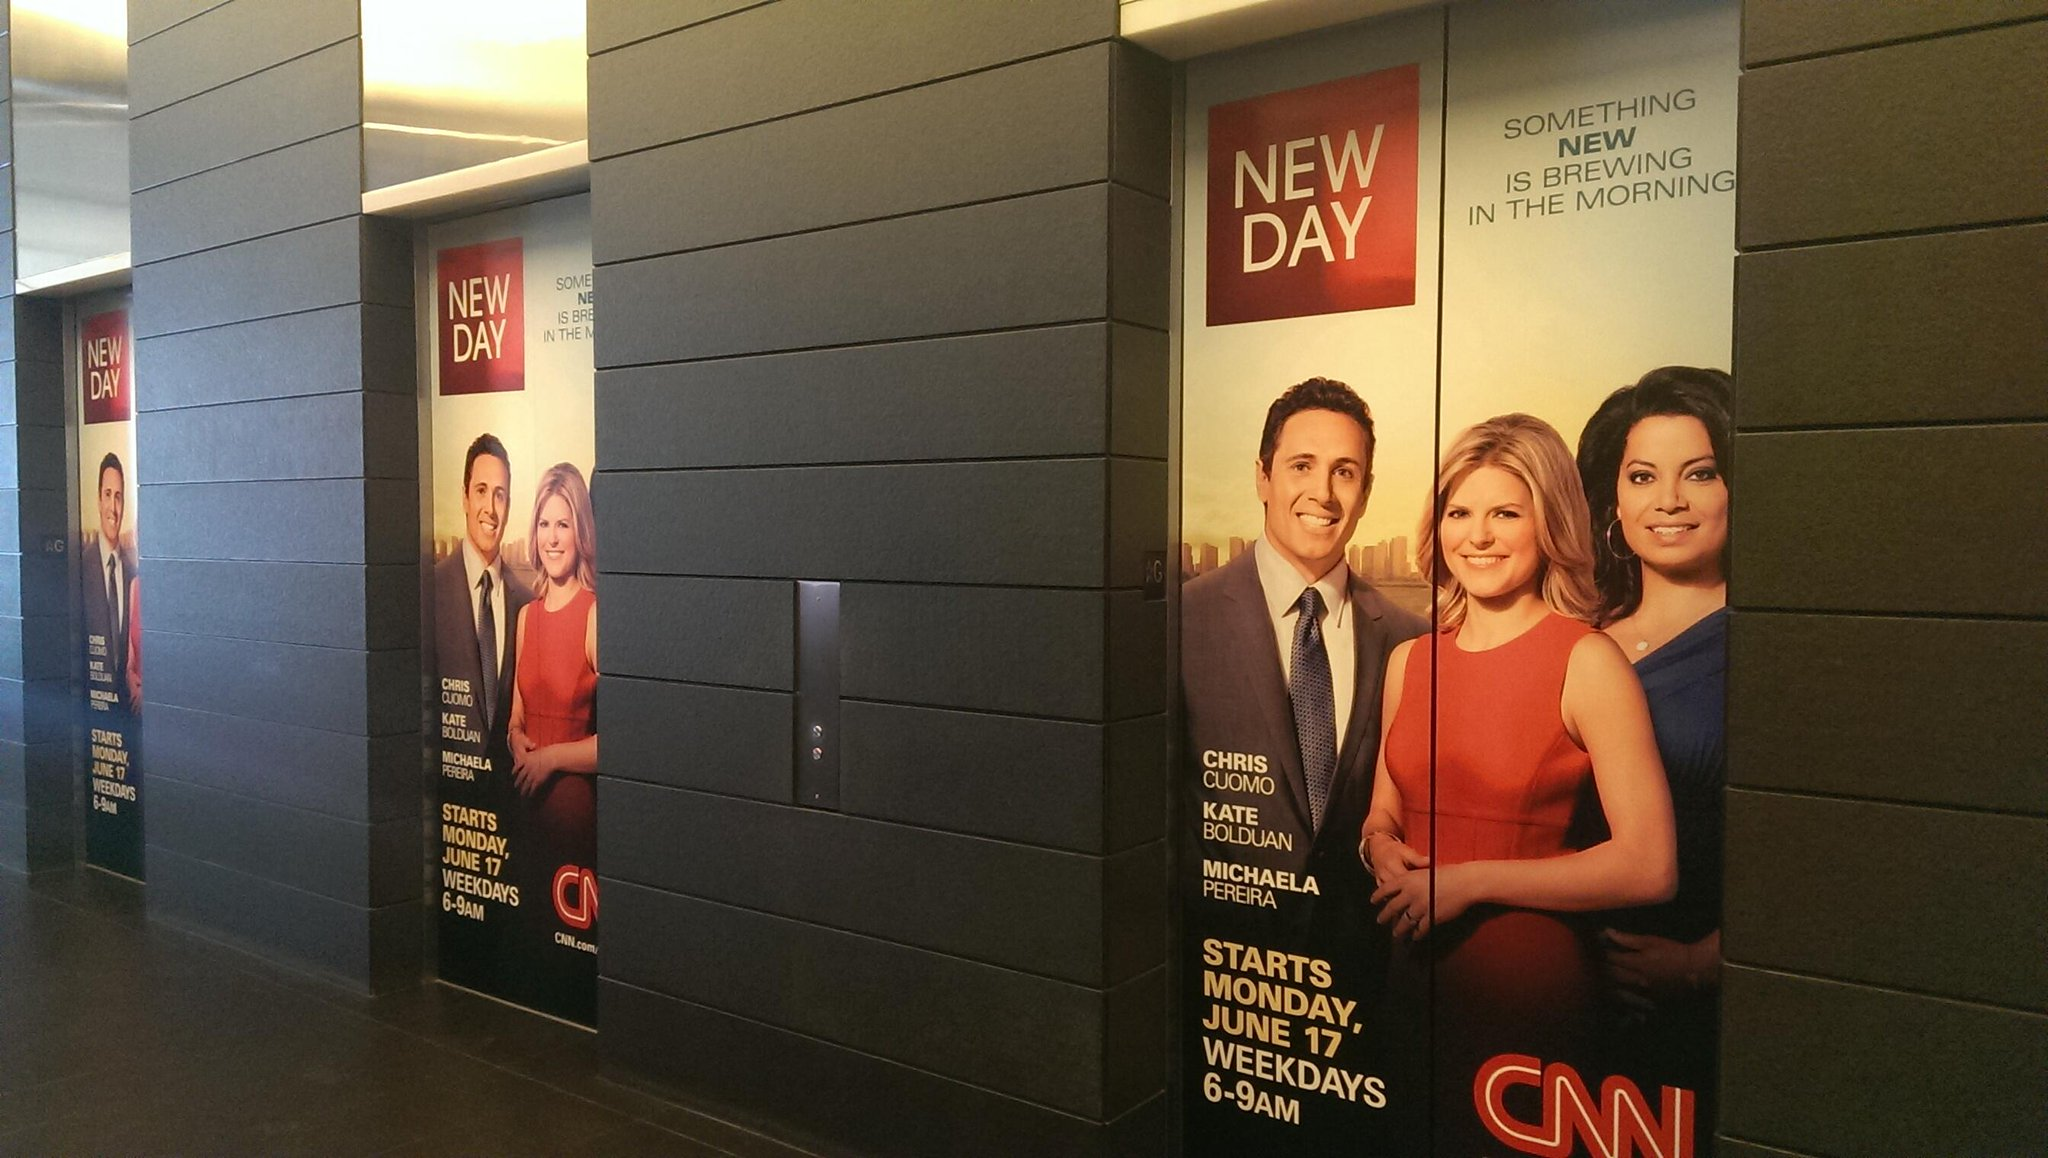 Twitter / ChrisCuomo: The elevators at the Time Warner ...